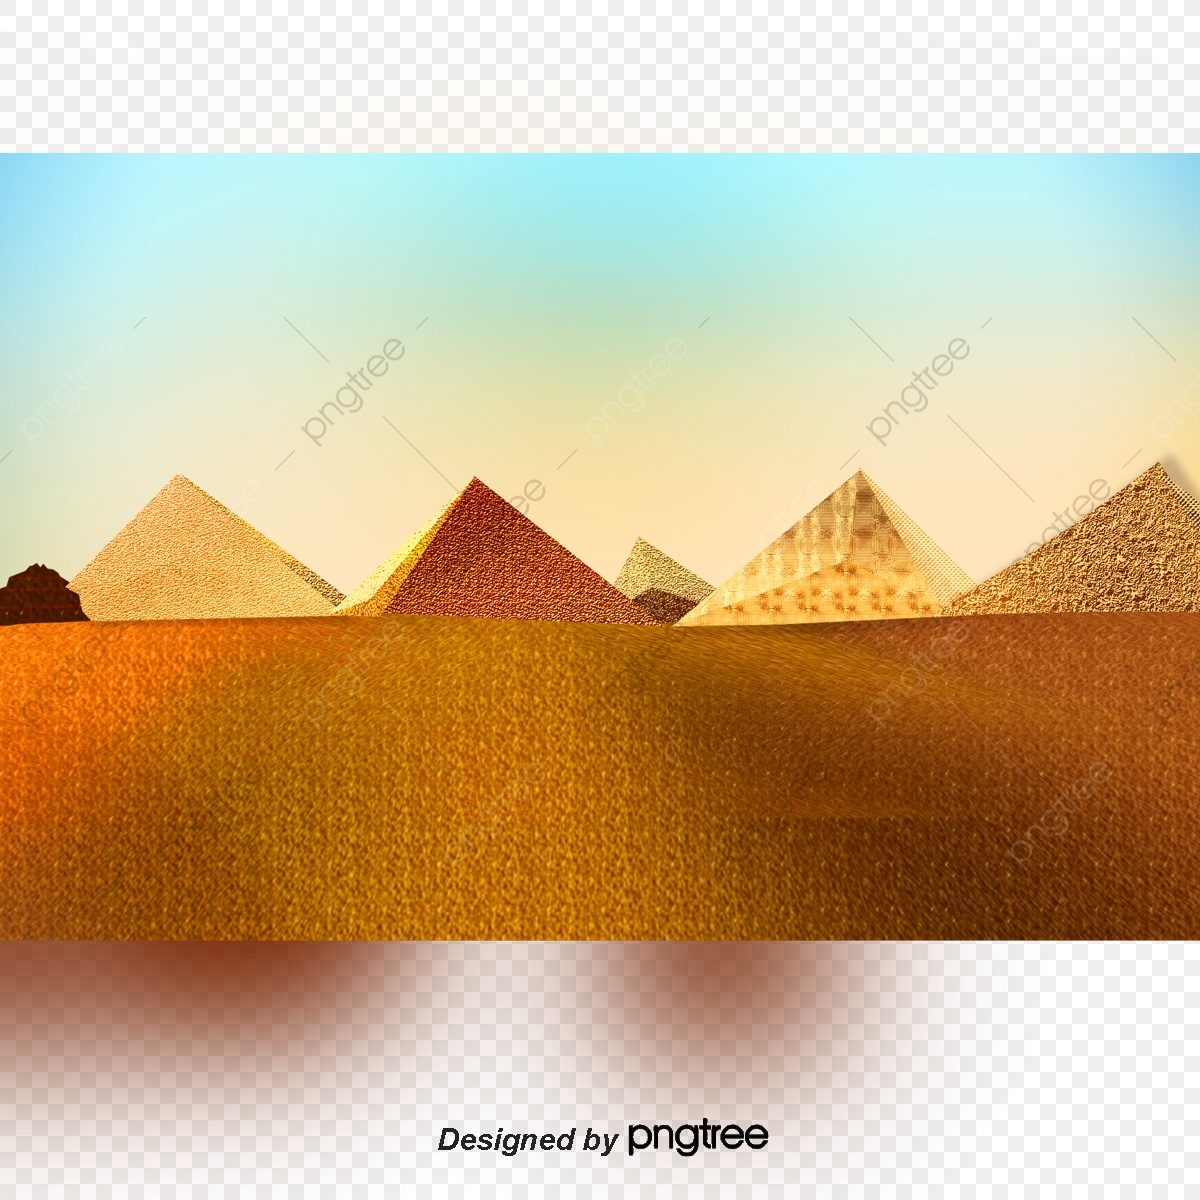 Sphinx camel places of. Desert clipart desert pyramid